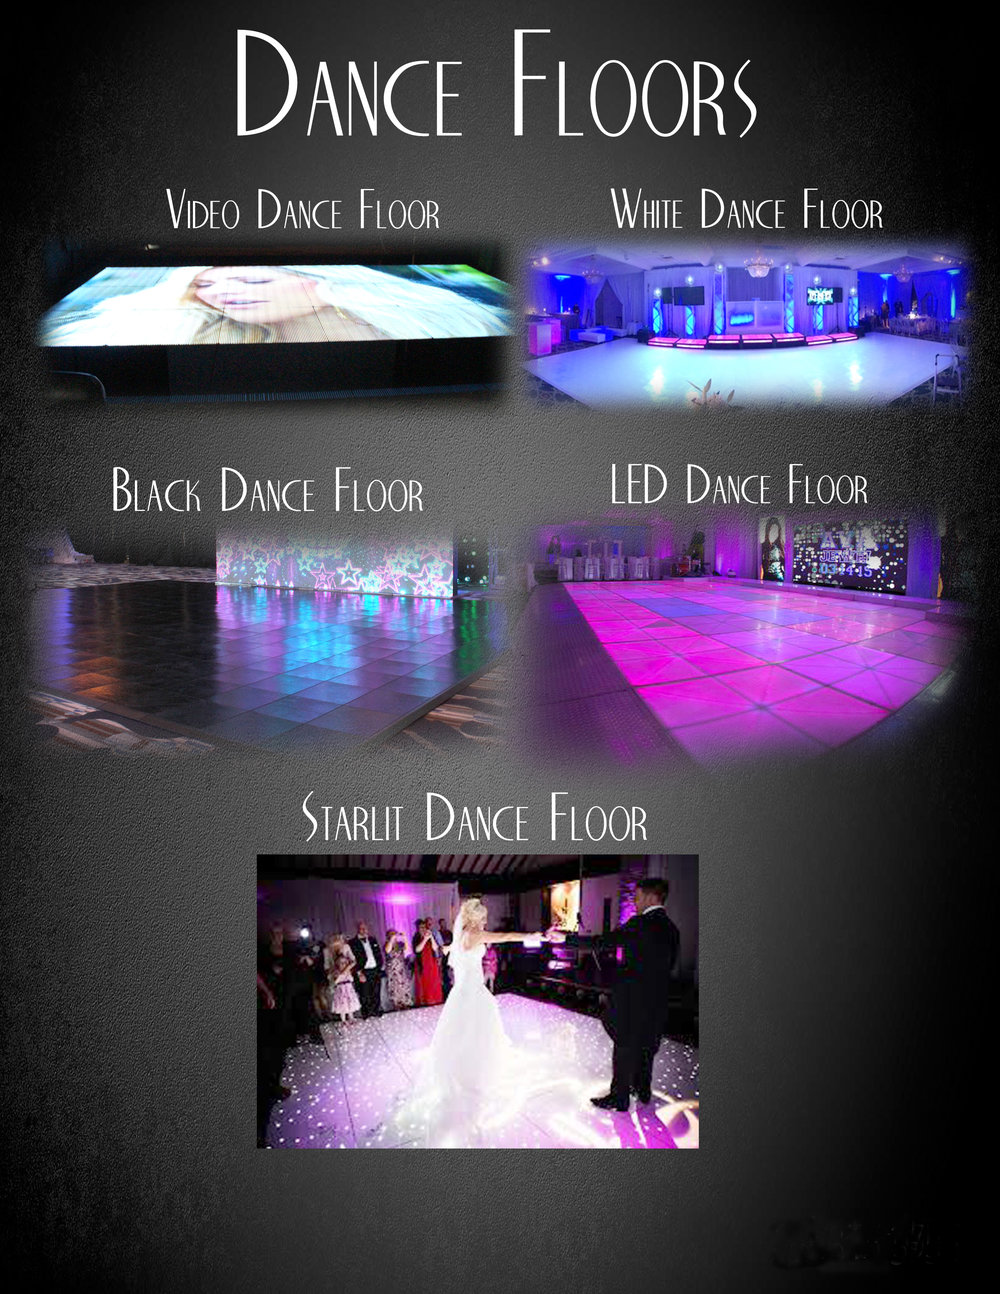 005-P5_Dance Floors.jpg